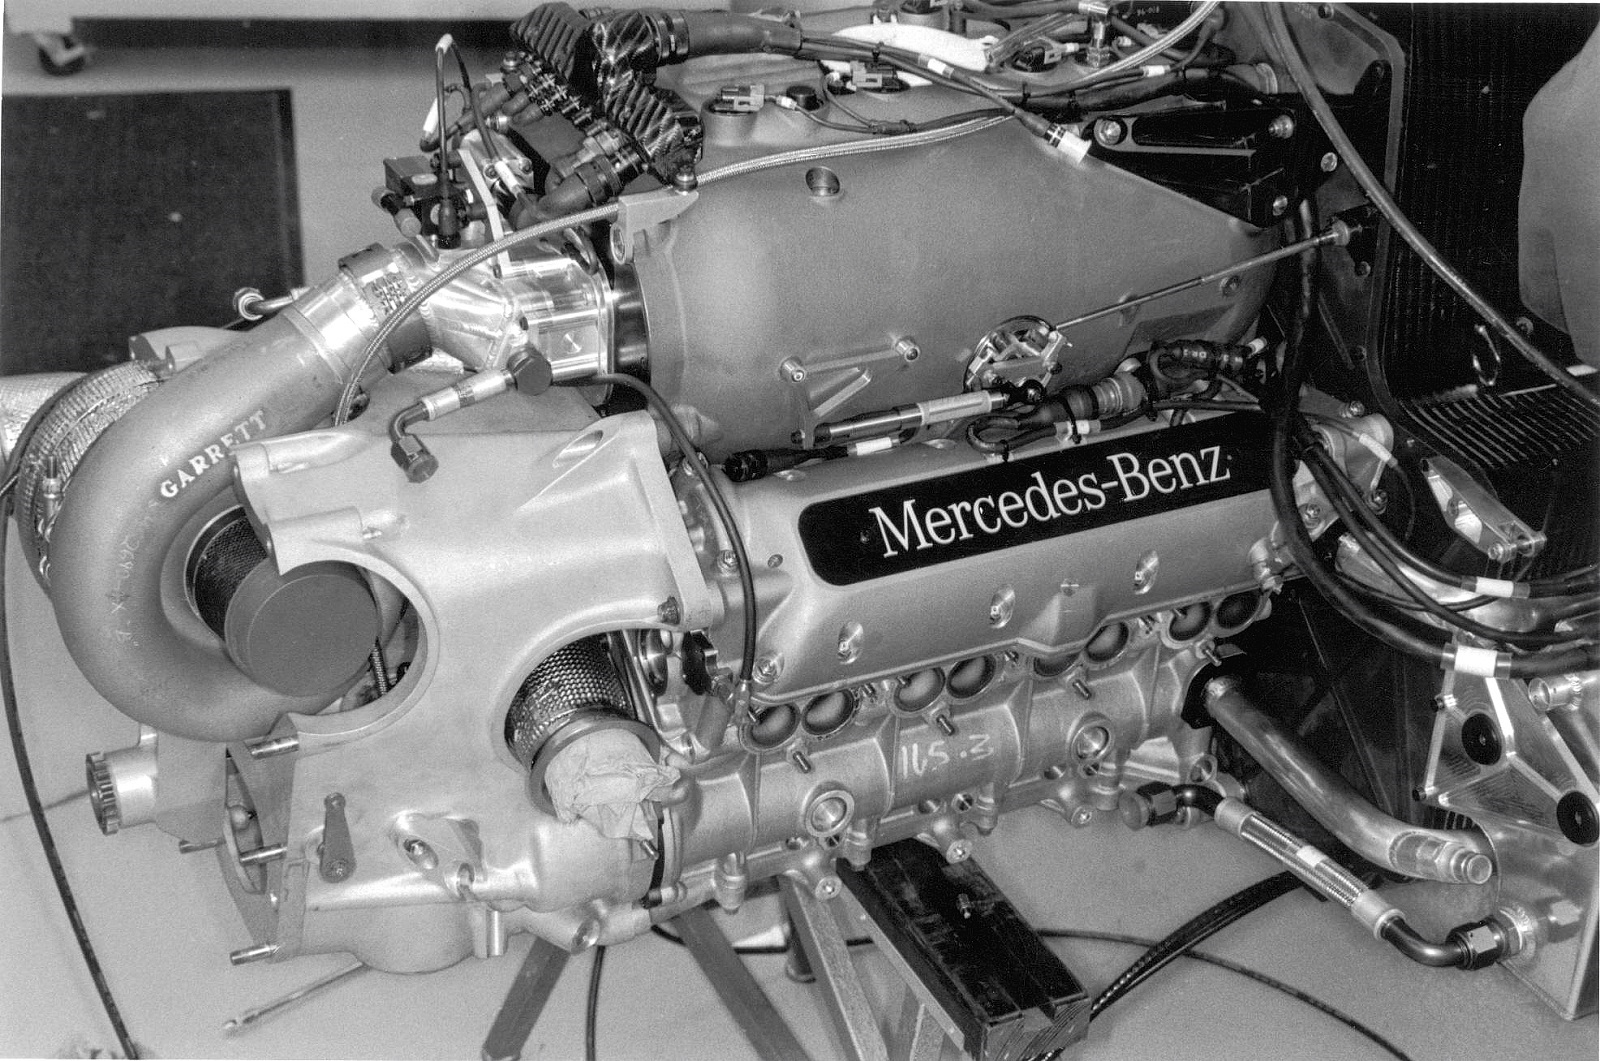 Mercedes-Benz Penske PC27 10 engine